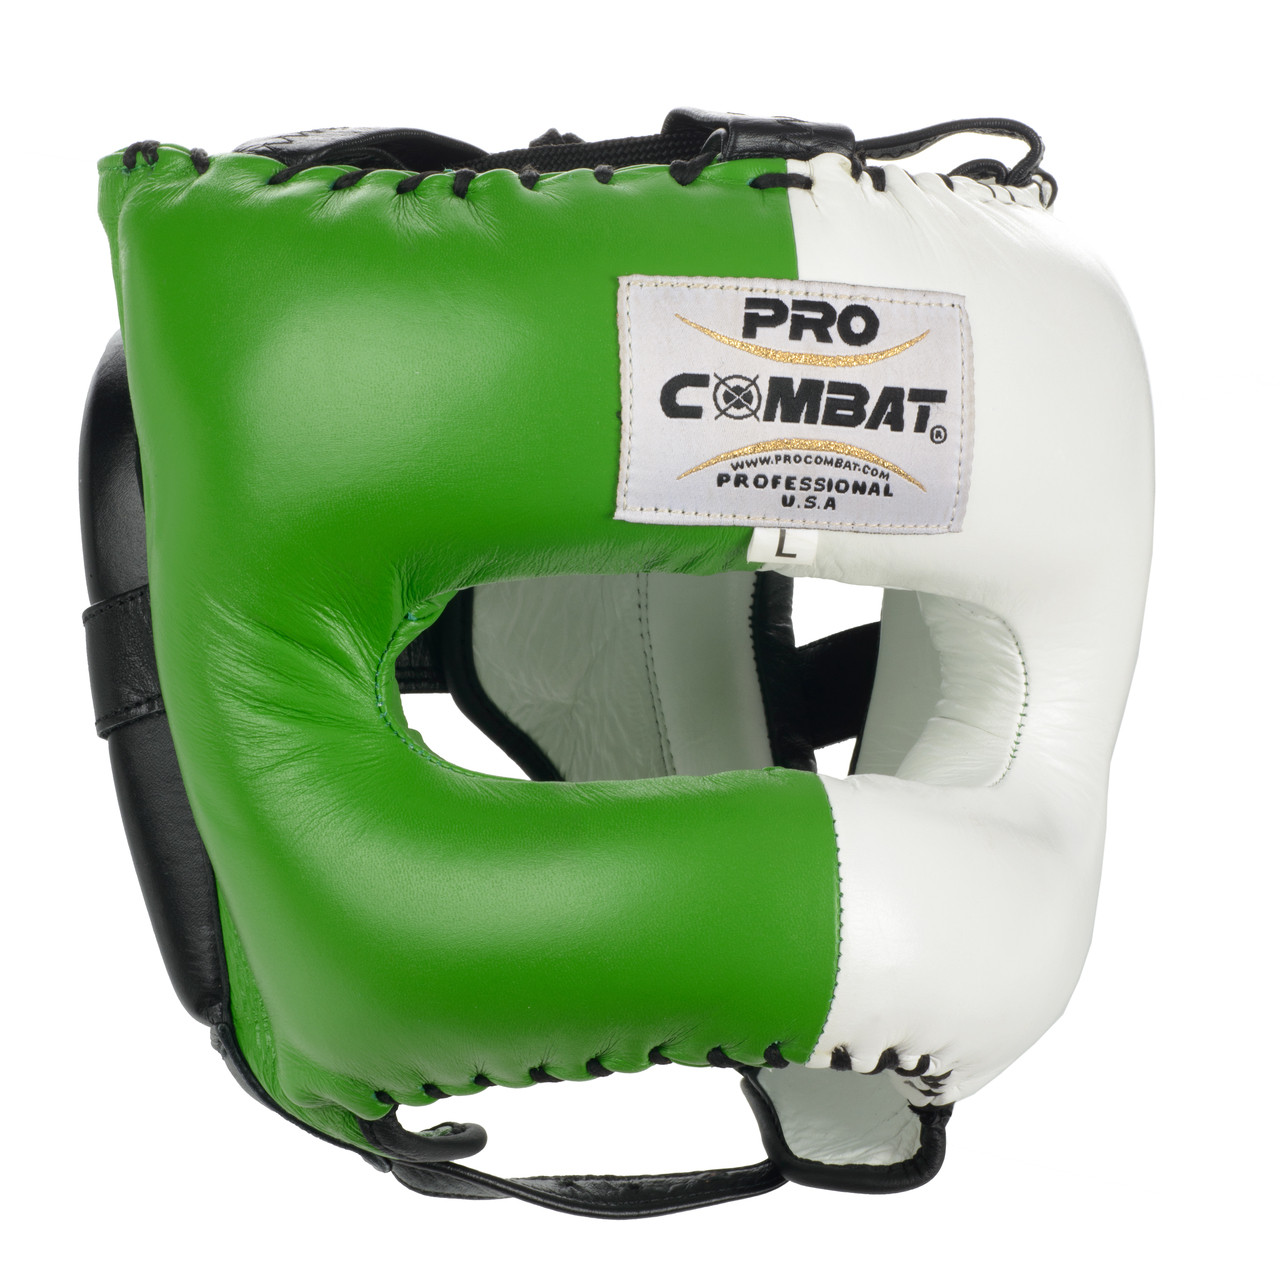 3a474a9b3 PRO COMBAT Face Saver Leather Boxing Headgear with Nylon Face Bar - Green /  White Color